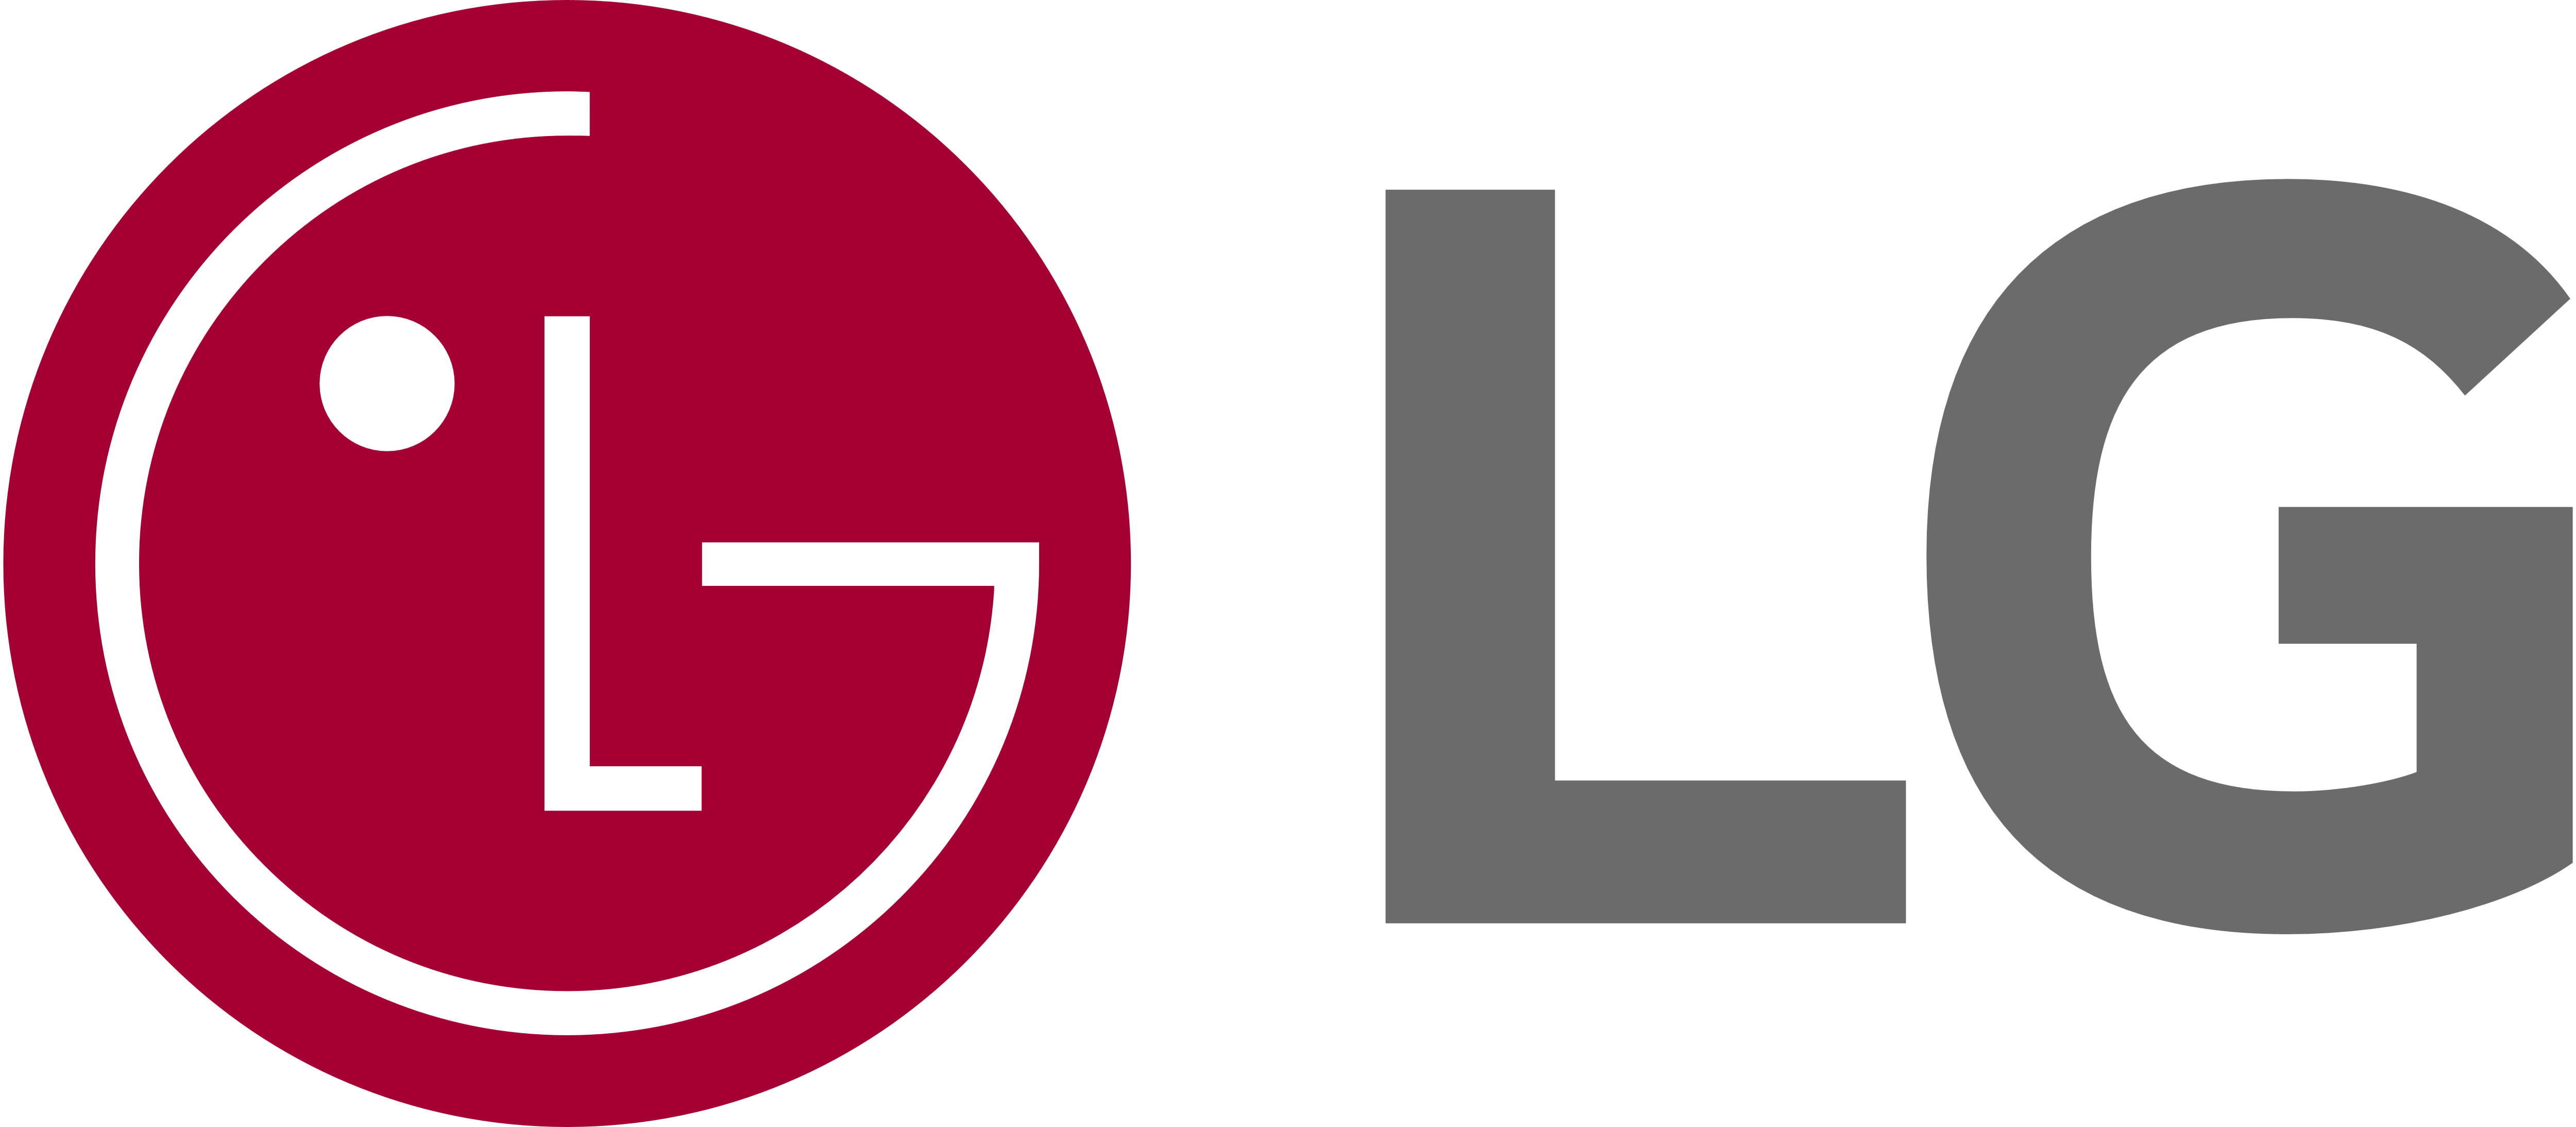 LG Laundry Machine Service, Kenmore Washer Repair